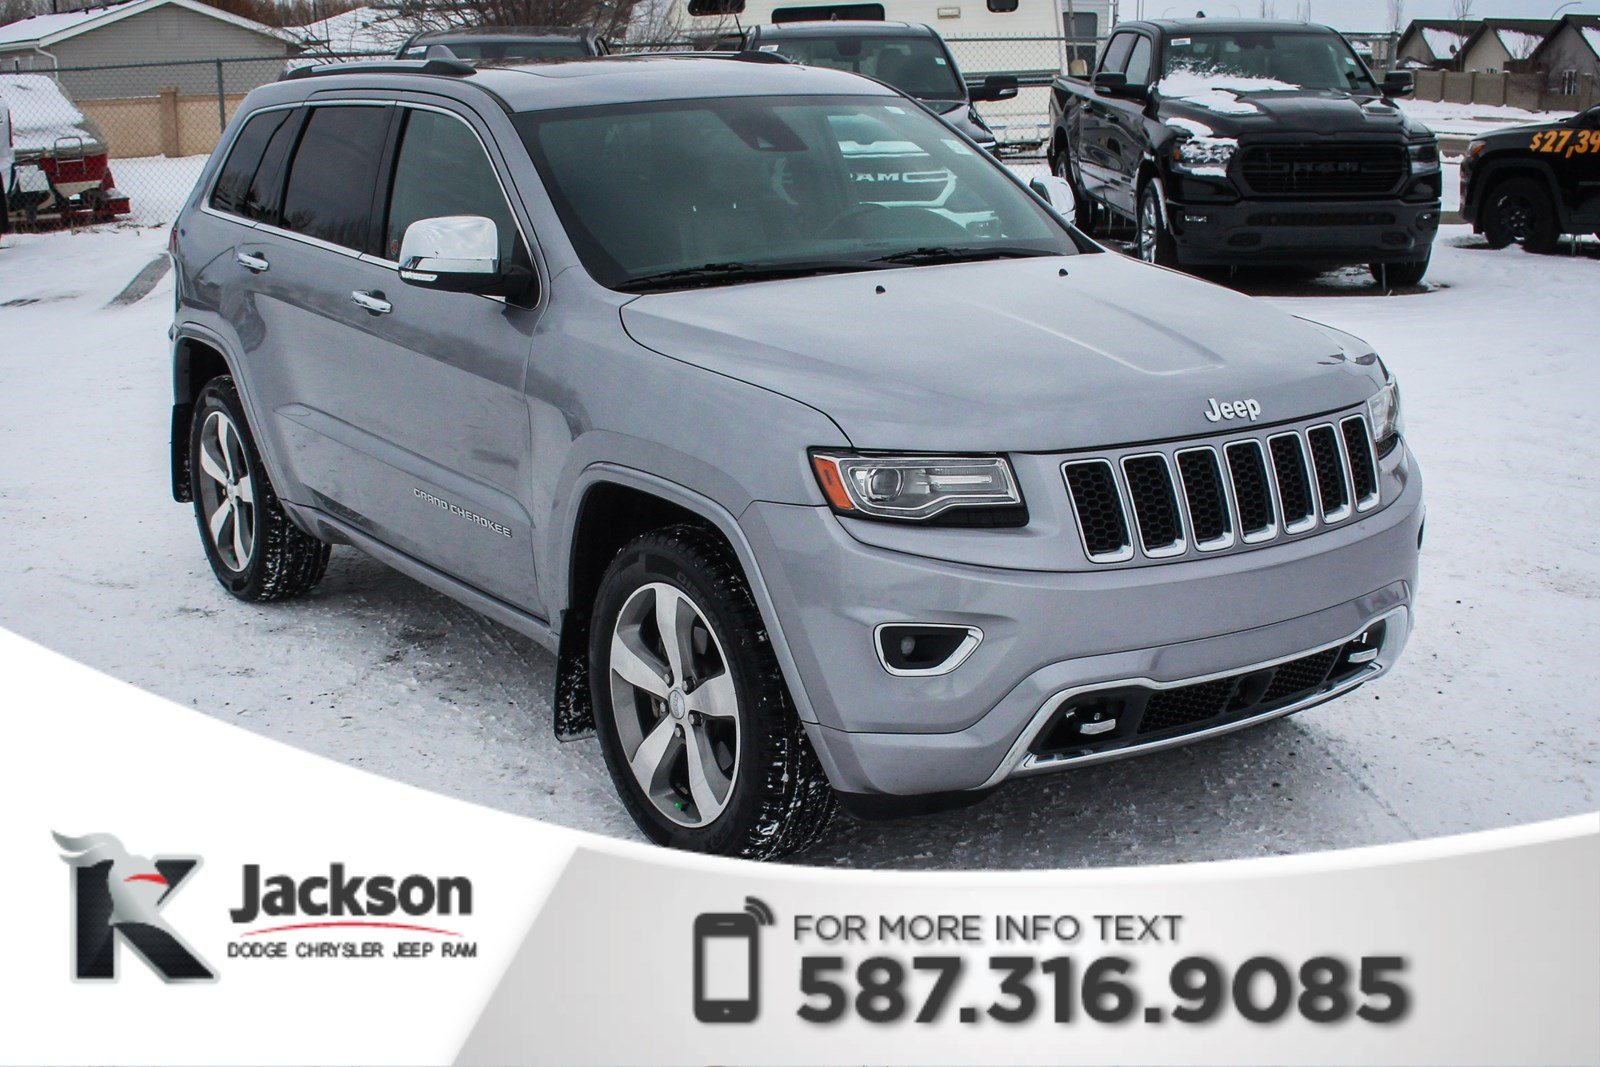 Pre-Owned 2014 Jeep Grand Cherokee Overland - AWD, Panoramic Sunroof, Air Ride